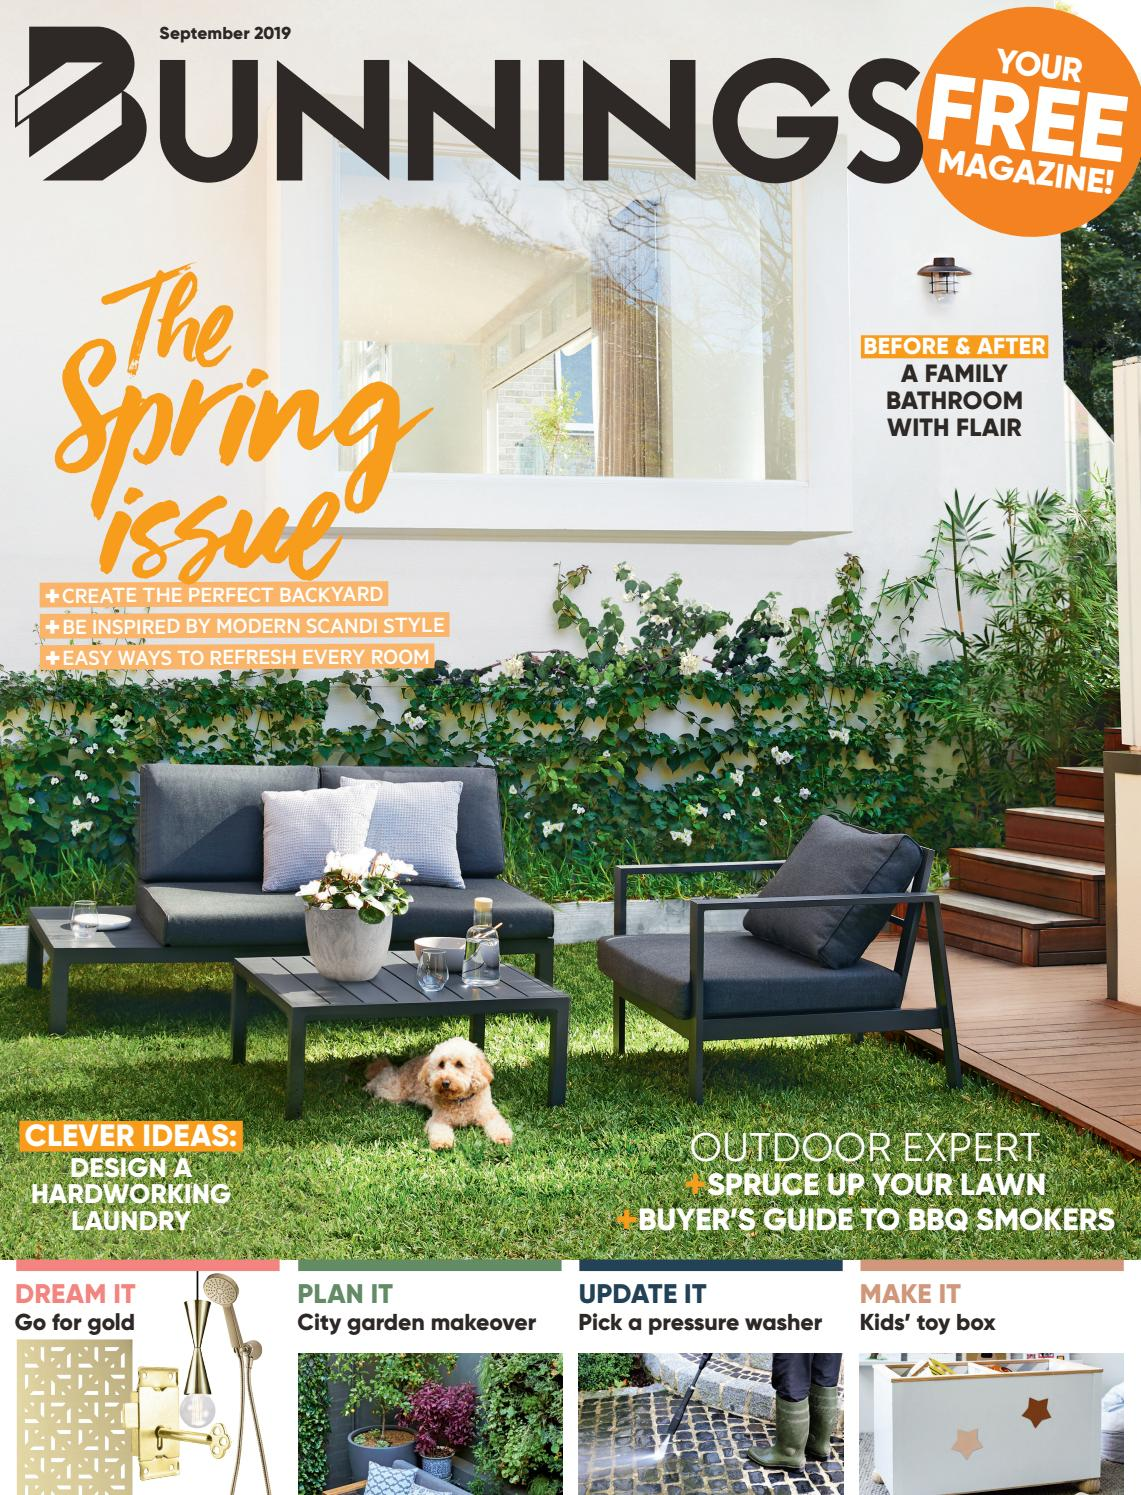 Bunnings Magazine September 2019 By Bunnings Issuu